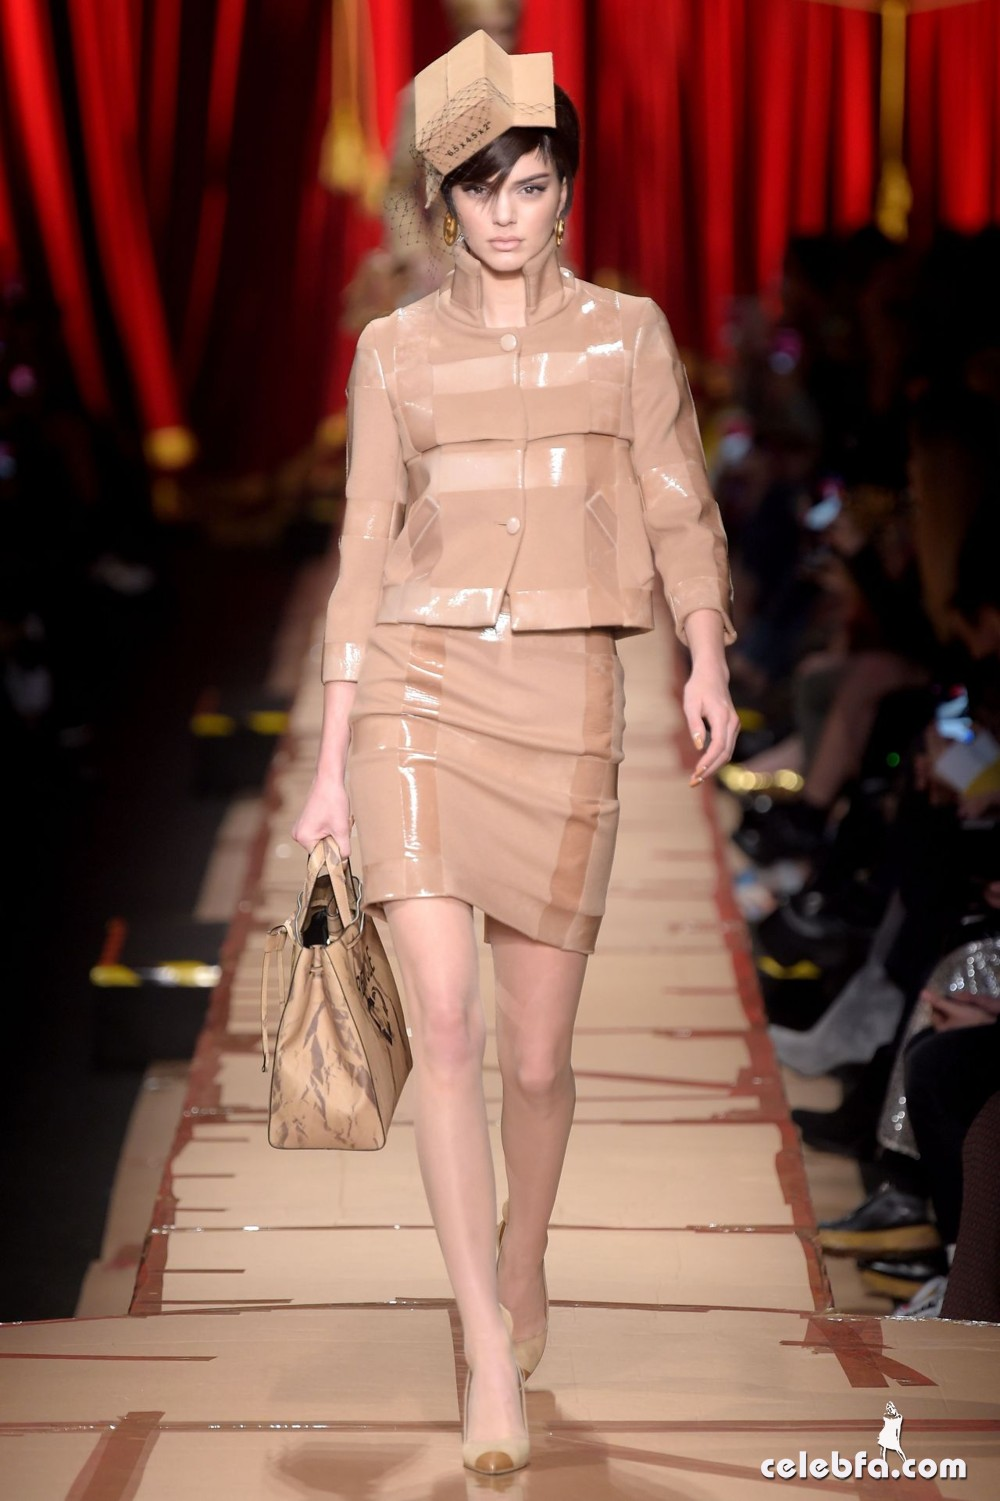 kendall-jenner-hit-the-catwalk-for-moschino-milan-fashion-week-3